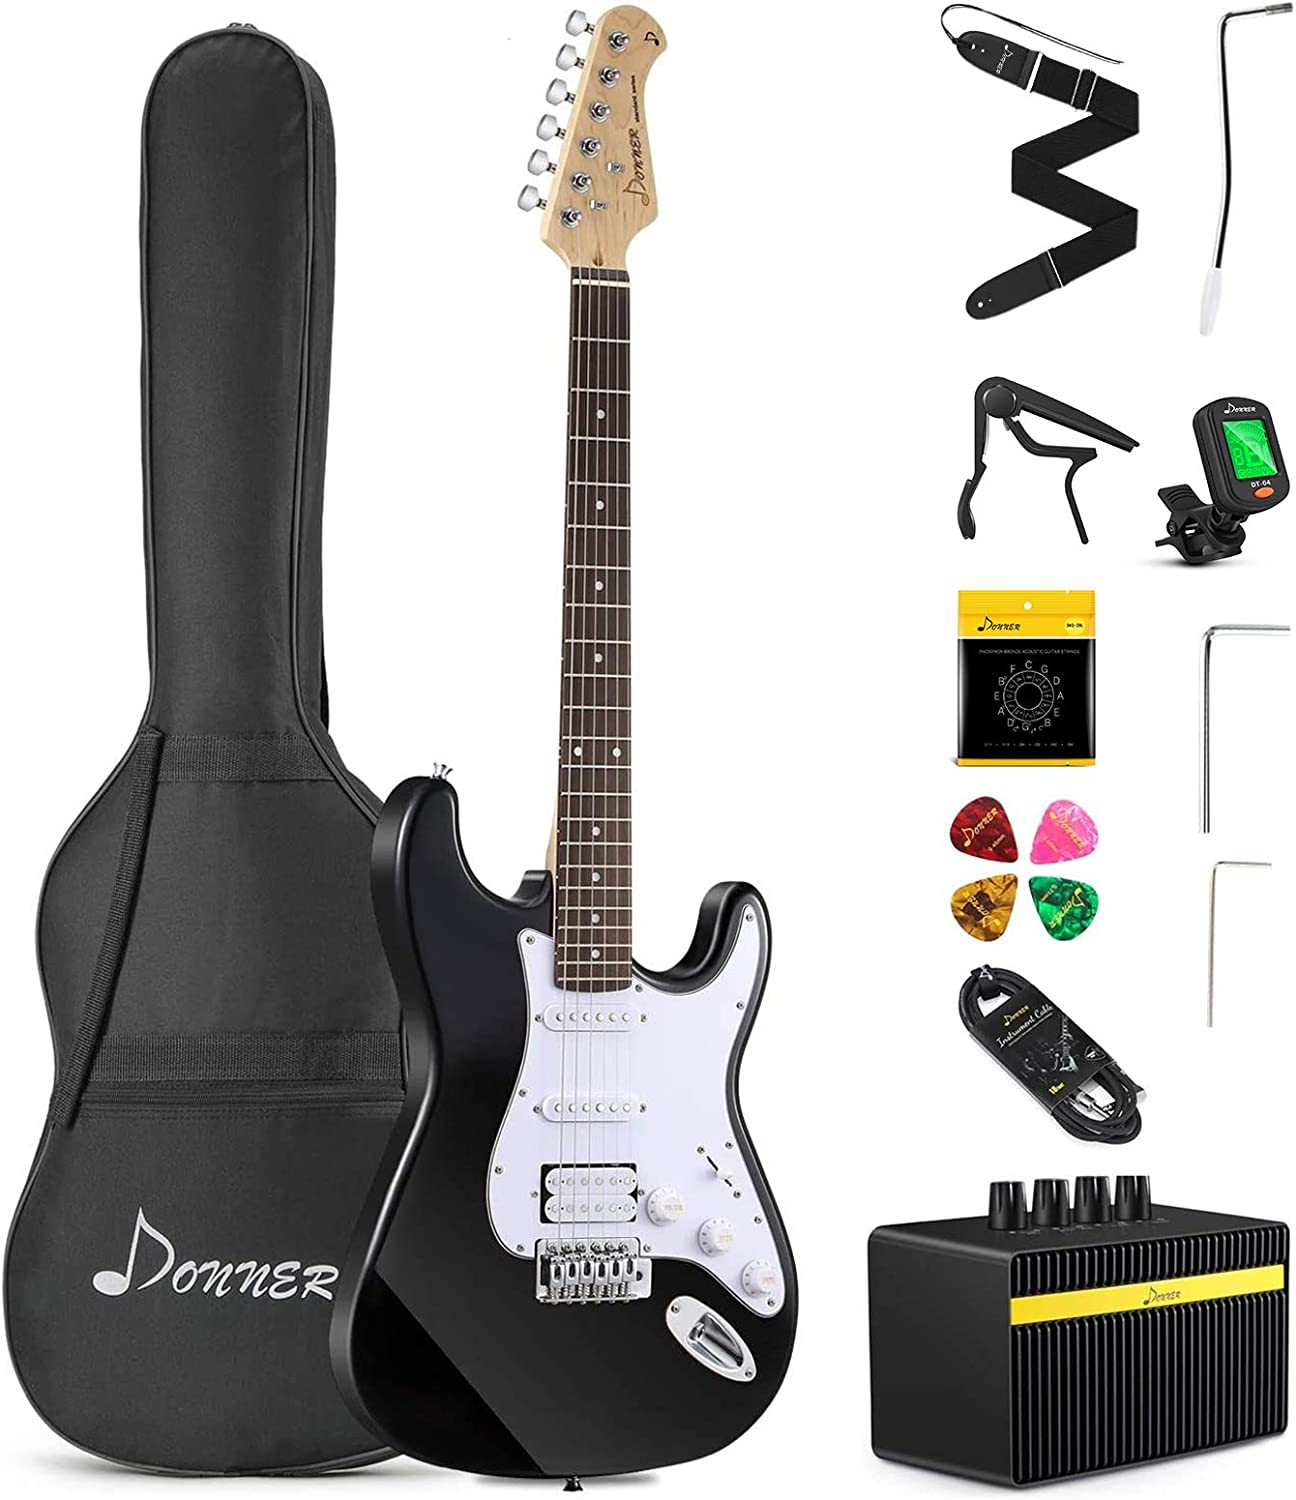 Donner DST-102B 39 Inch Electric Body Beginner 2021 model Choice Kit Solid Guitar